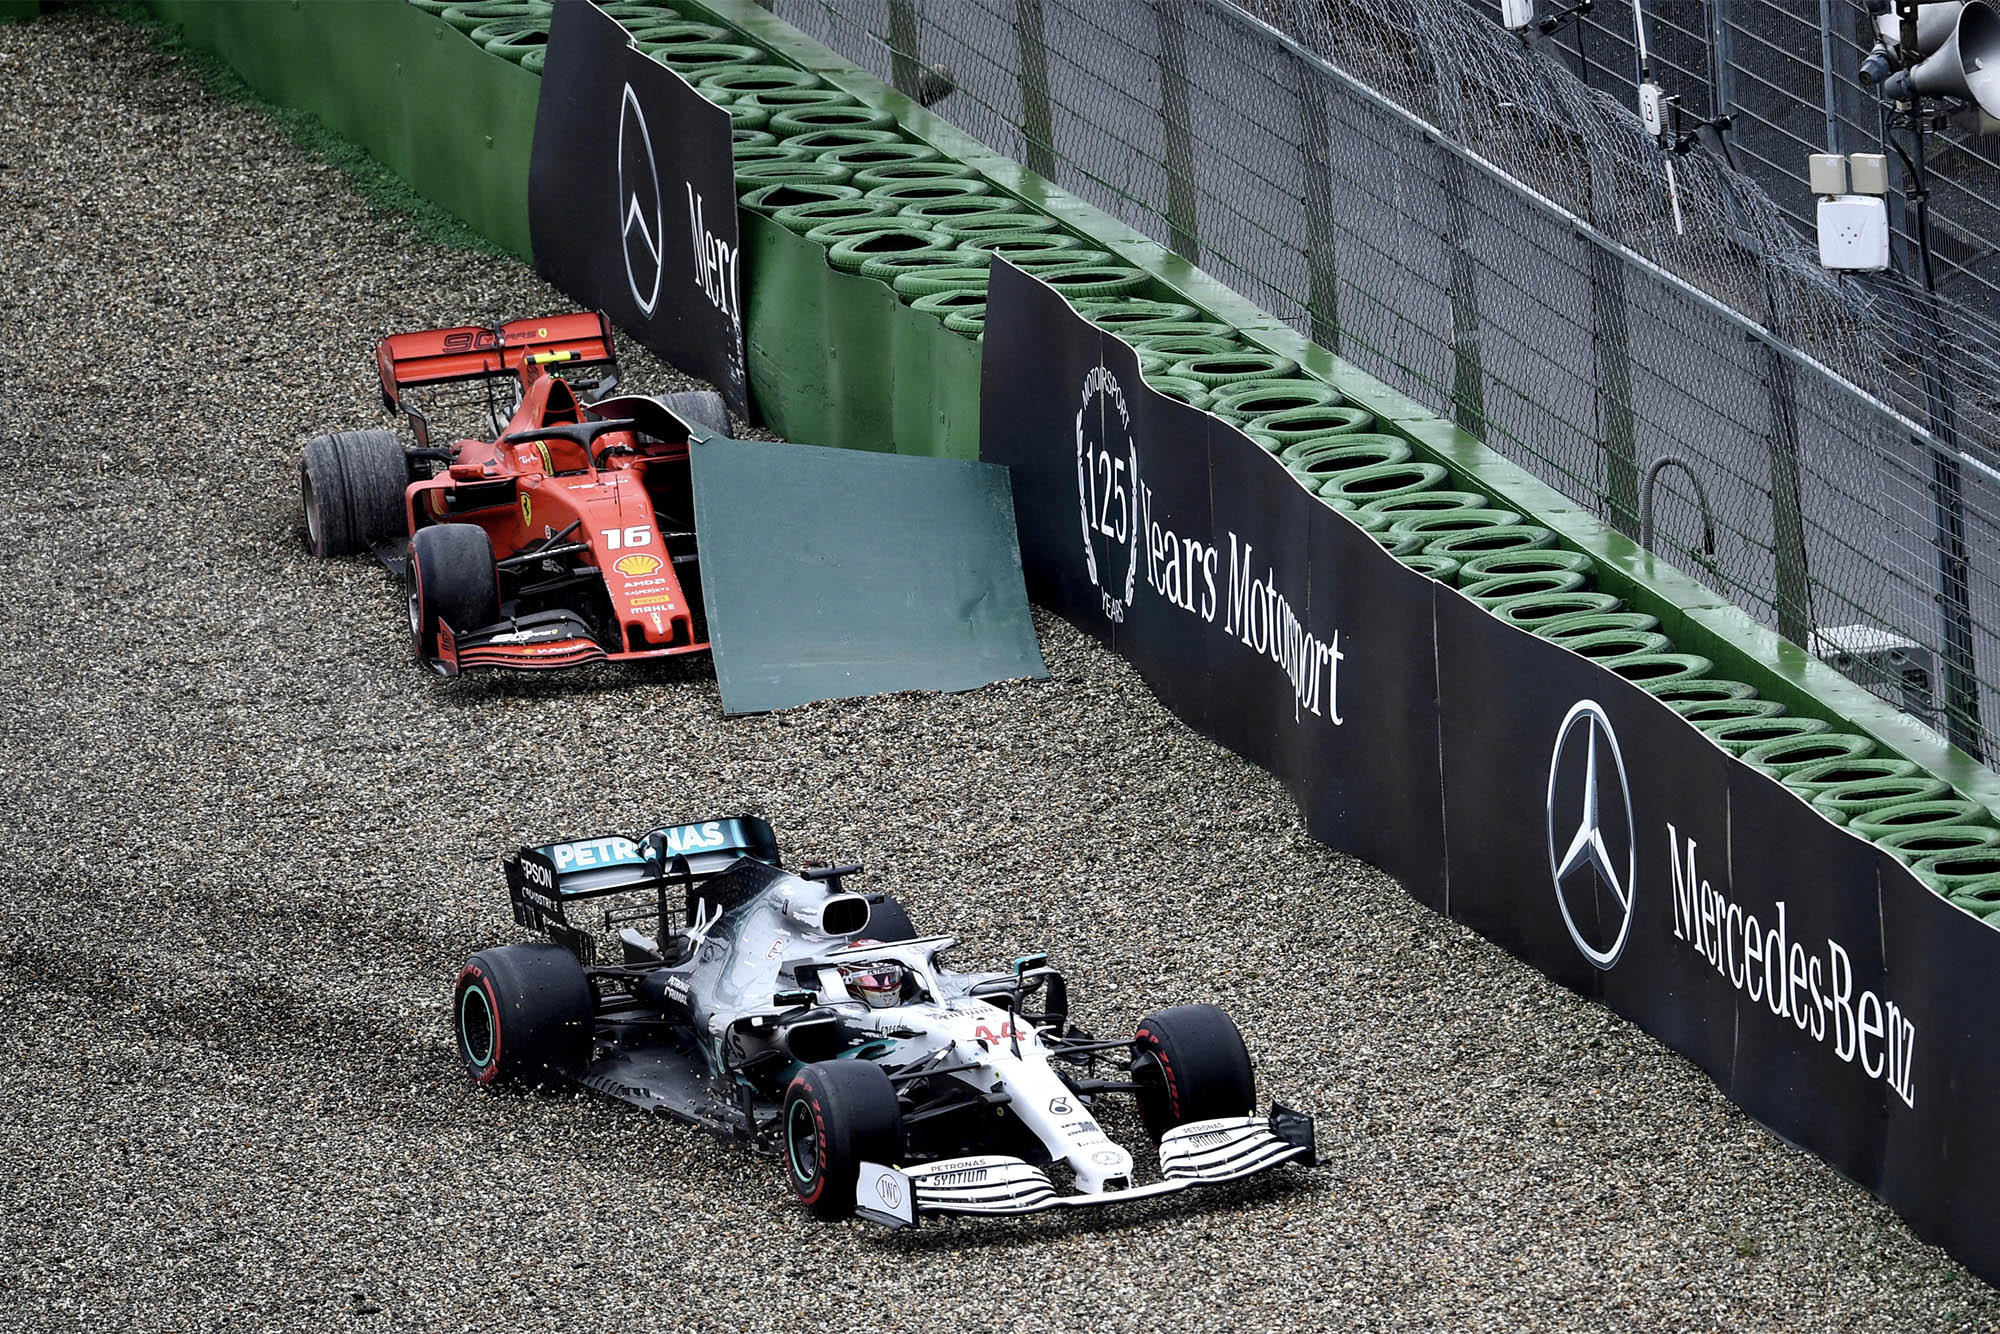 Lewis Hamilton skids past Charles Leclercs stranded Ferrari and into the barriers during the 2019 German Grand Prix